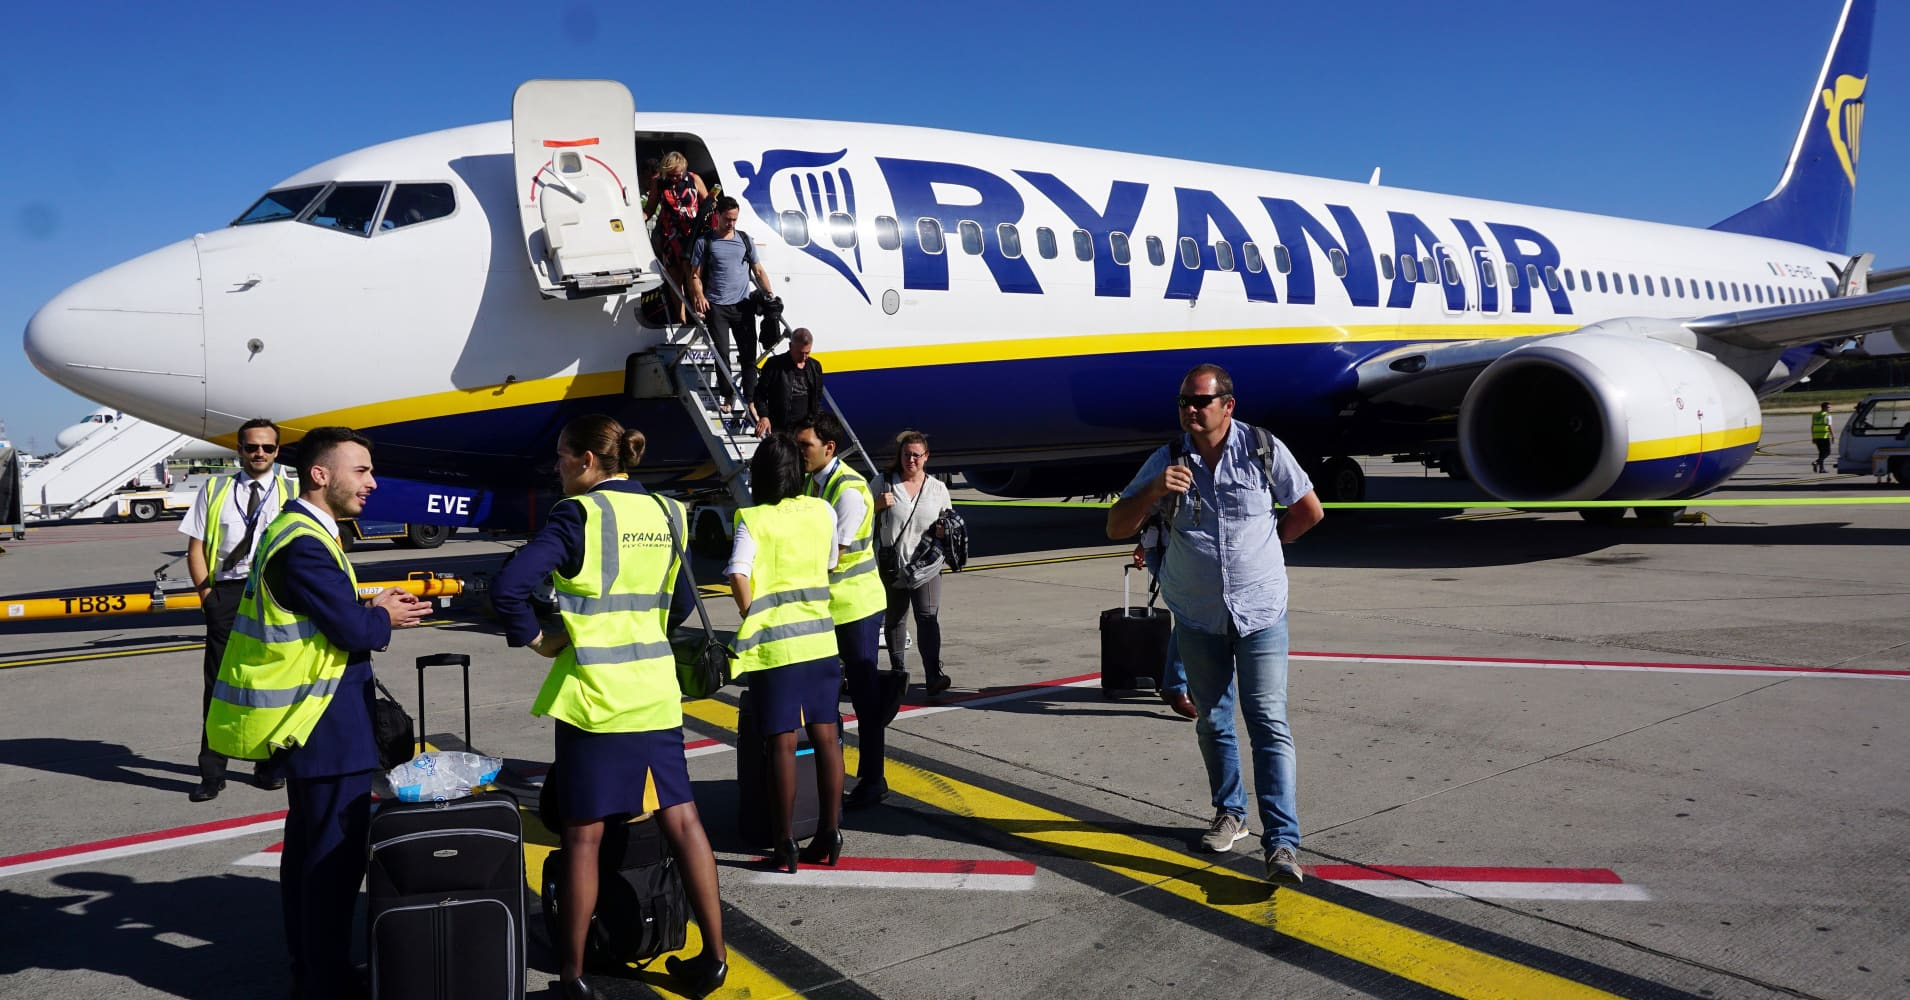 Ryanair reports 20 million euro loss for the third quarter on weaker fares